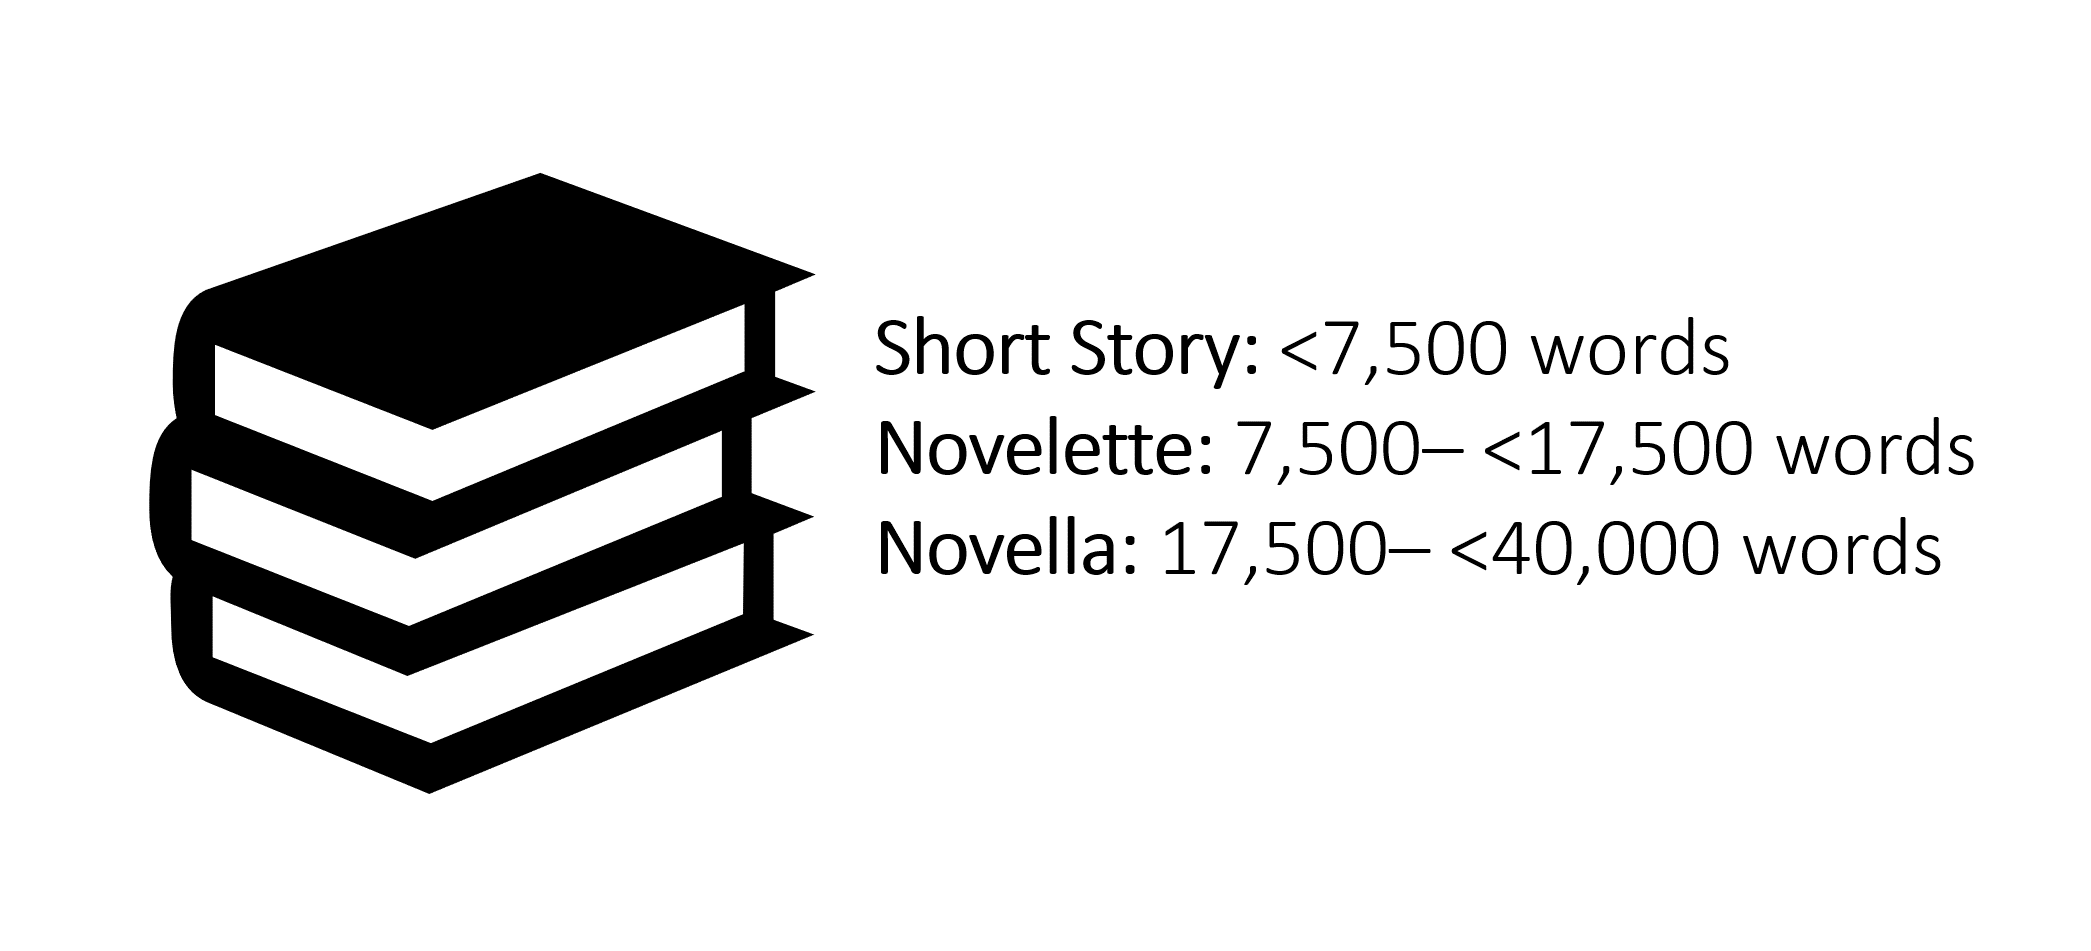 Short Story, Novelette, and Novella word counts